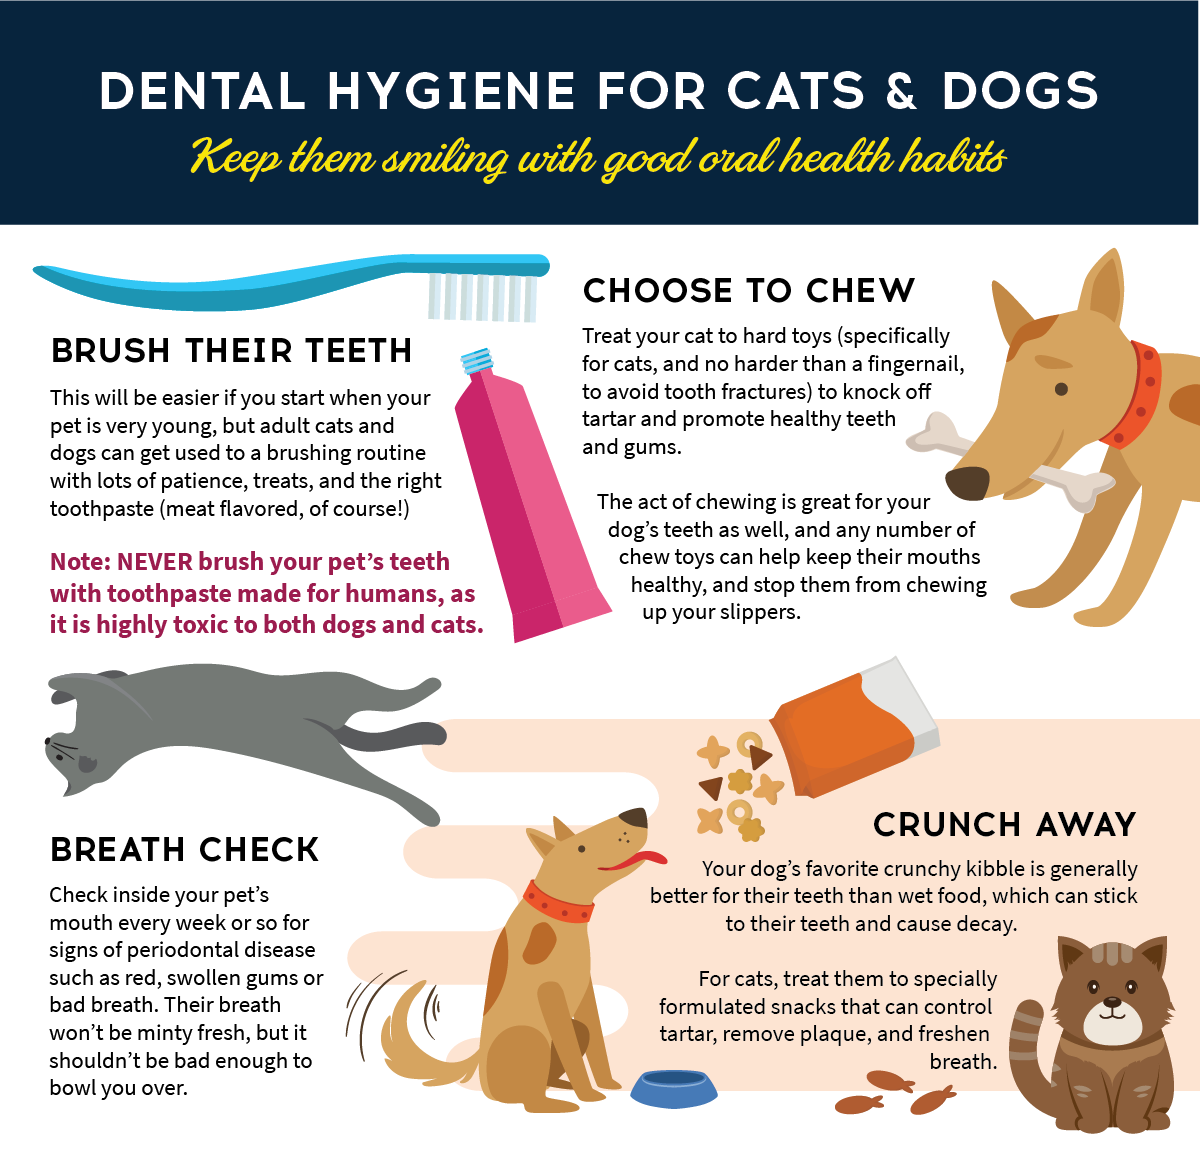 Did you know that February is National Pet Dental Health